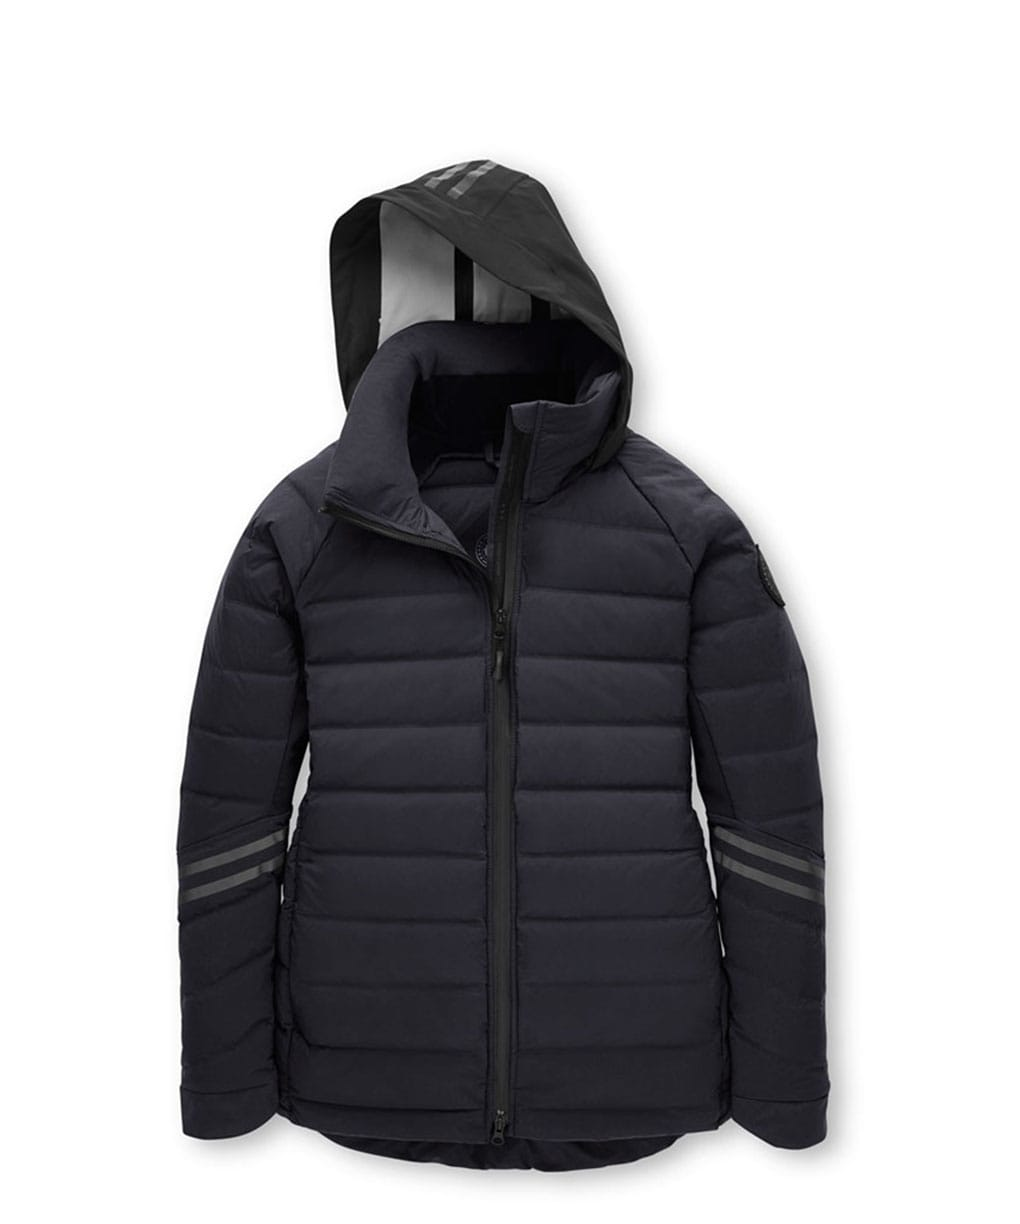 HYBRIDGE CW JACKET BLACK LABEL